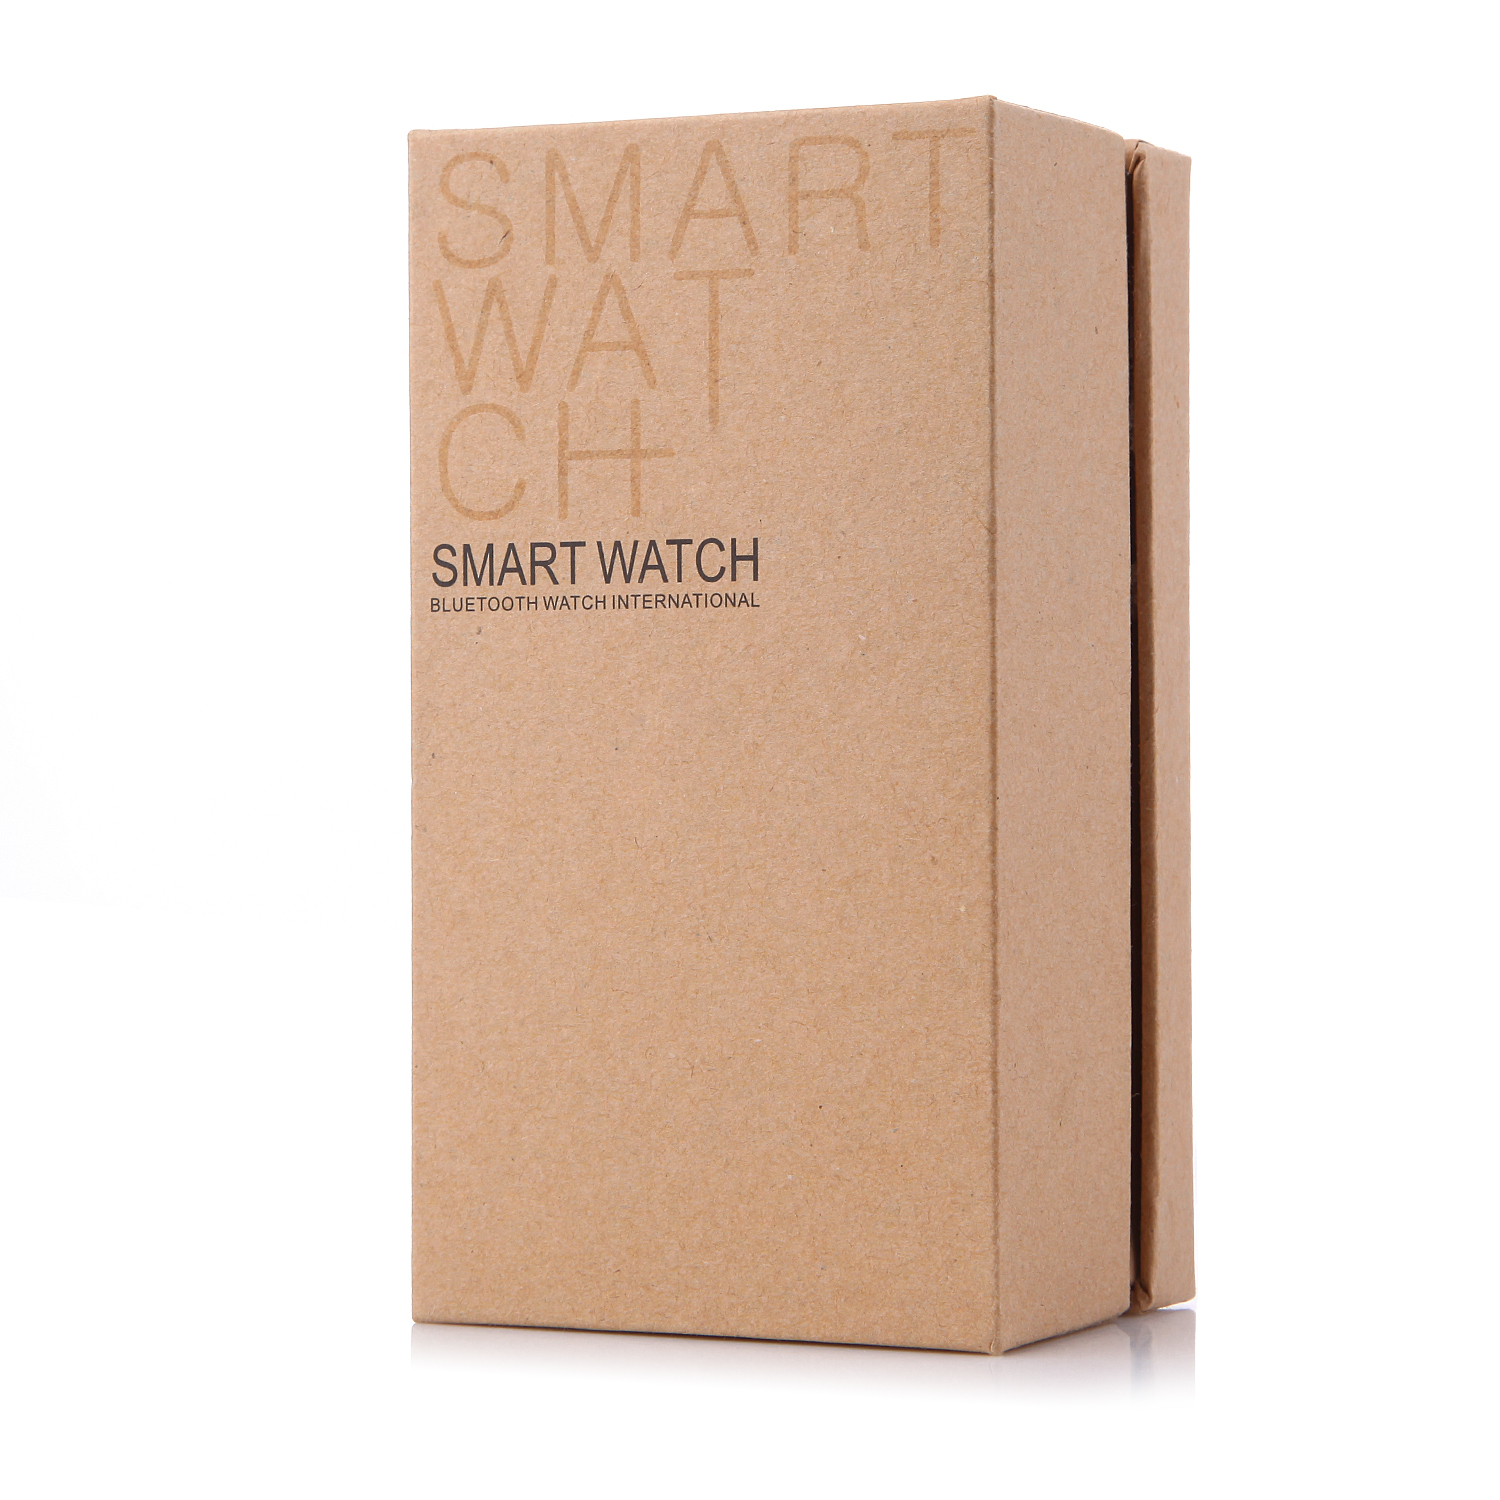 RWATCH R6S Bluetooth Smart Remote Control Watch for iOS Android Smartphones Champagne